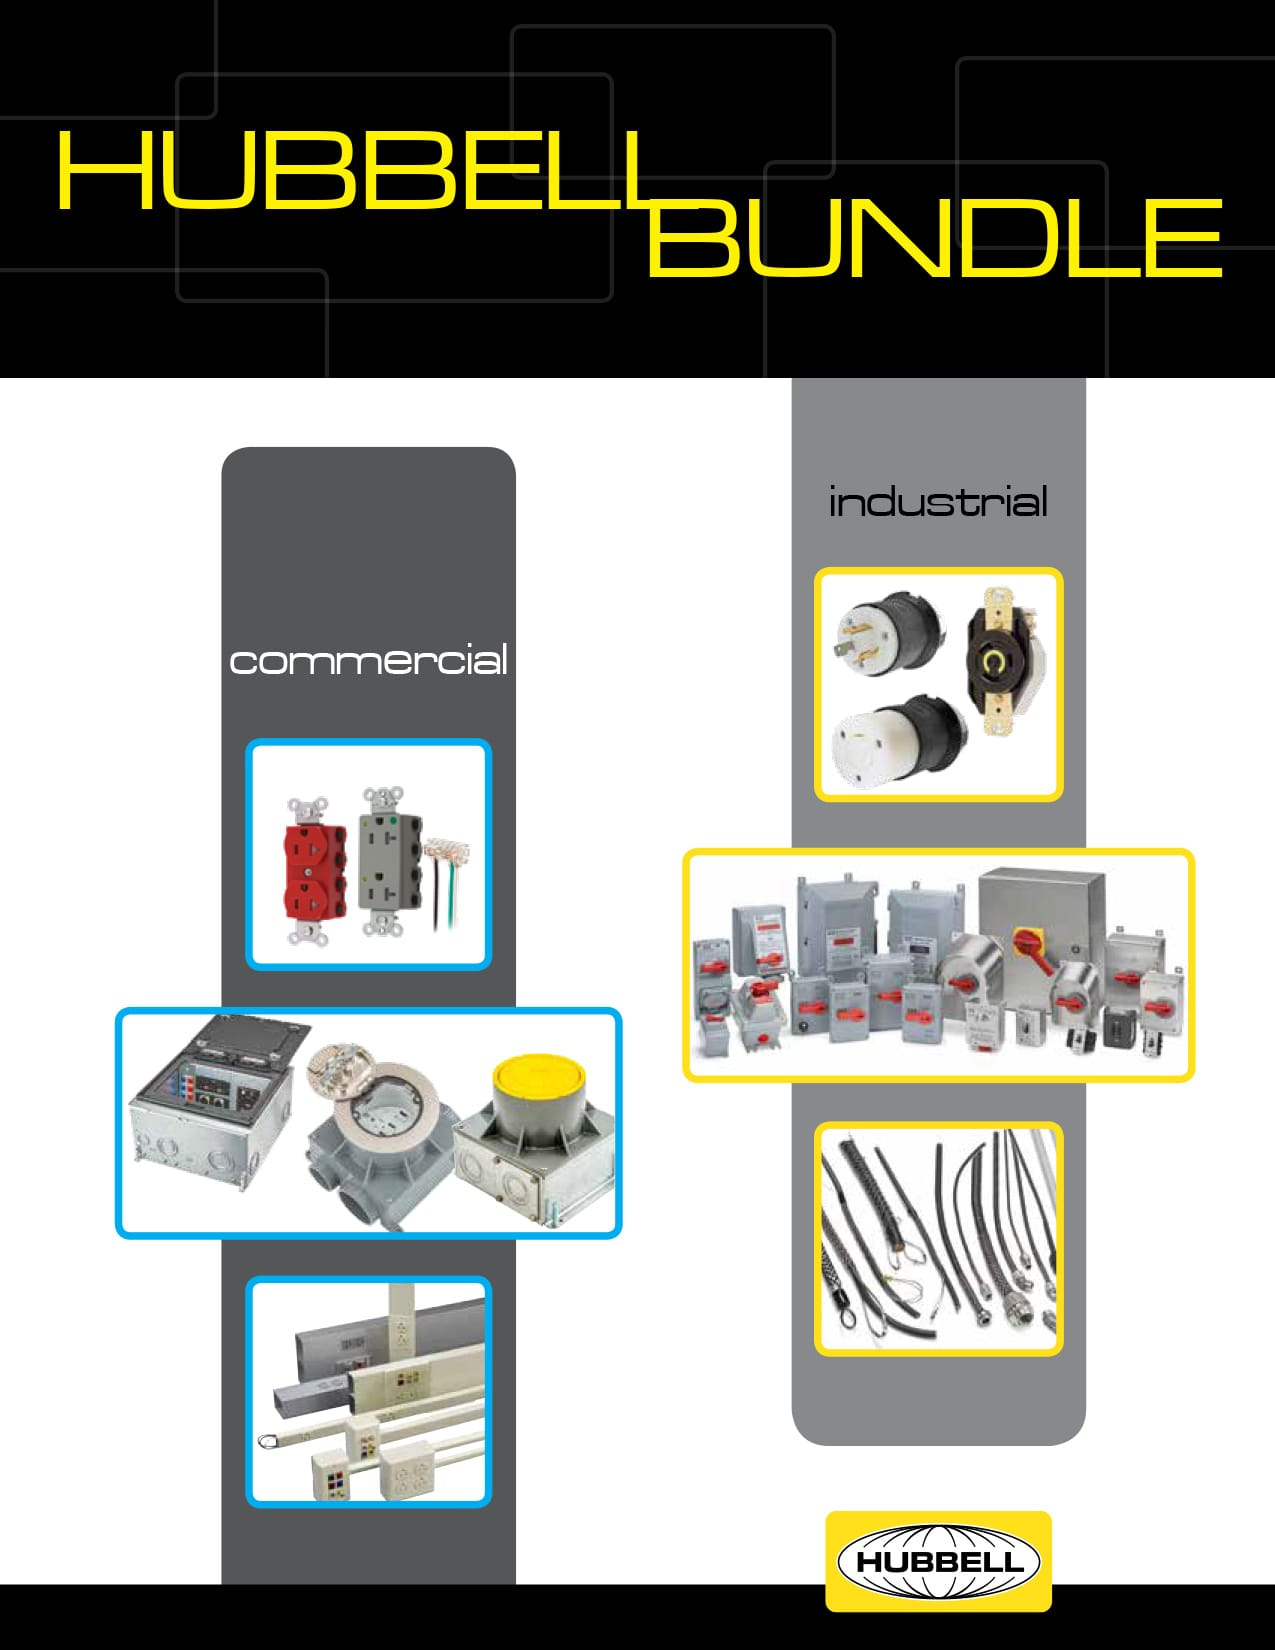 Commercial and Industrial Hubbell Bundle